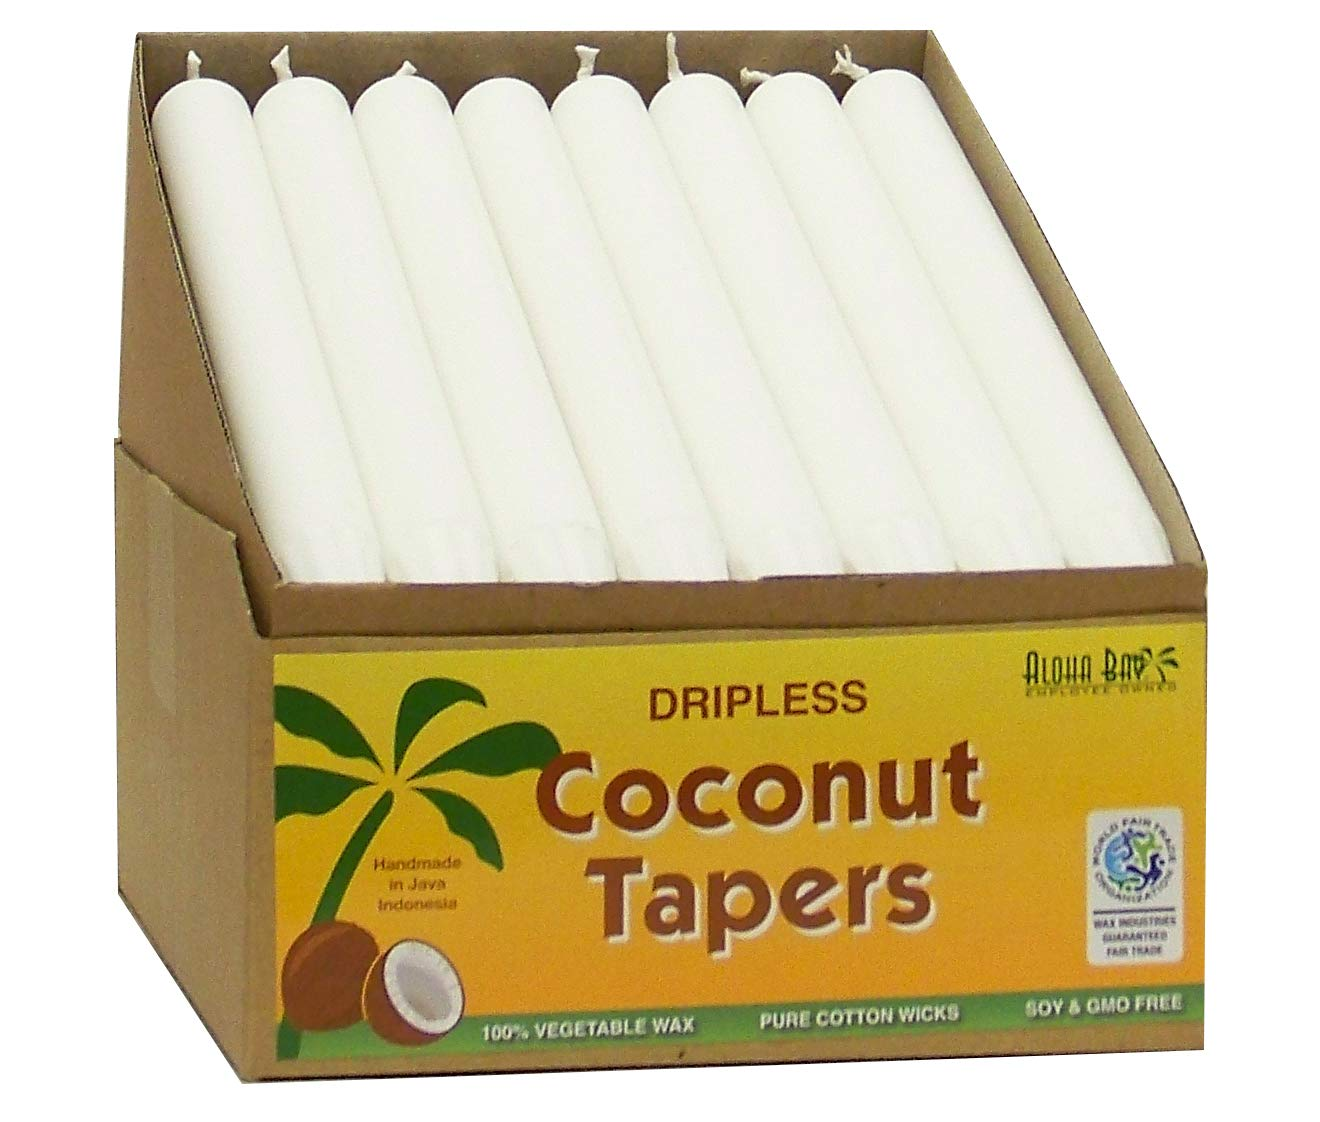 Aloha Bay Coconut Tapers - 32 Pack of 9 Tapers - White by Aloha Bay